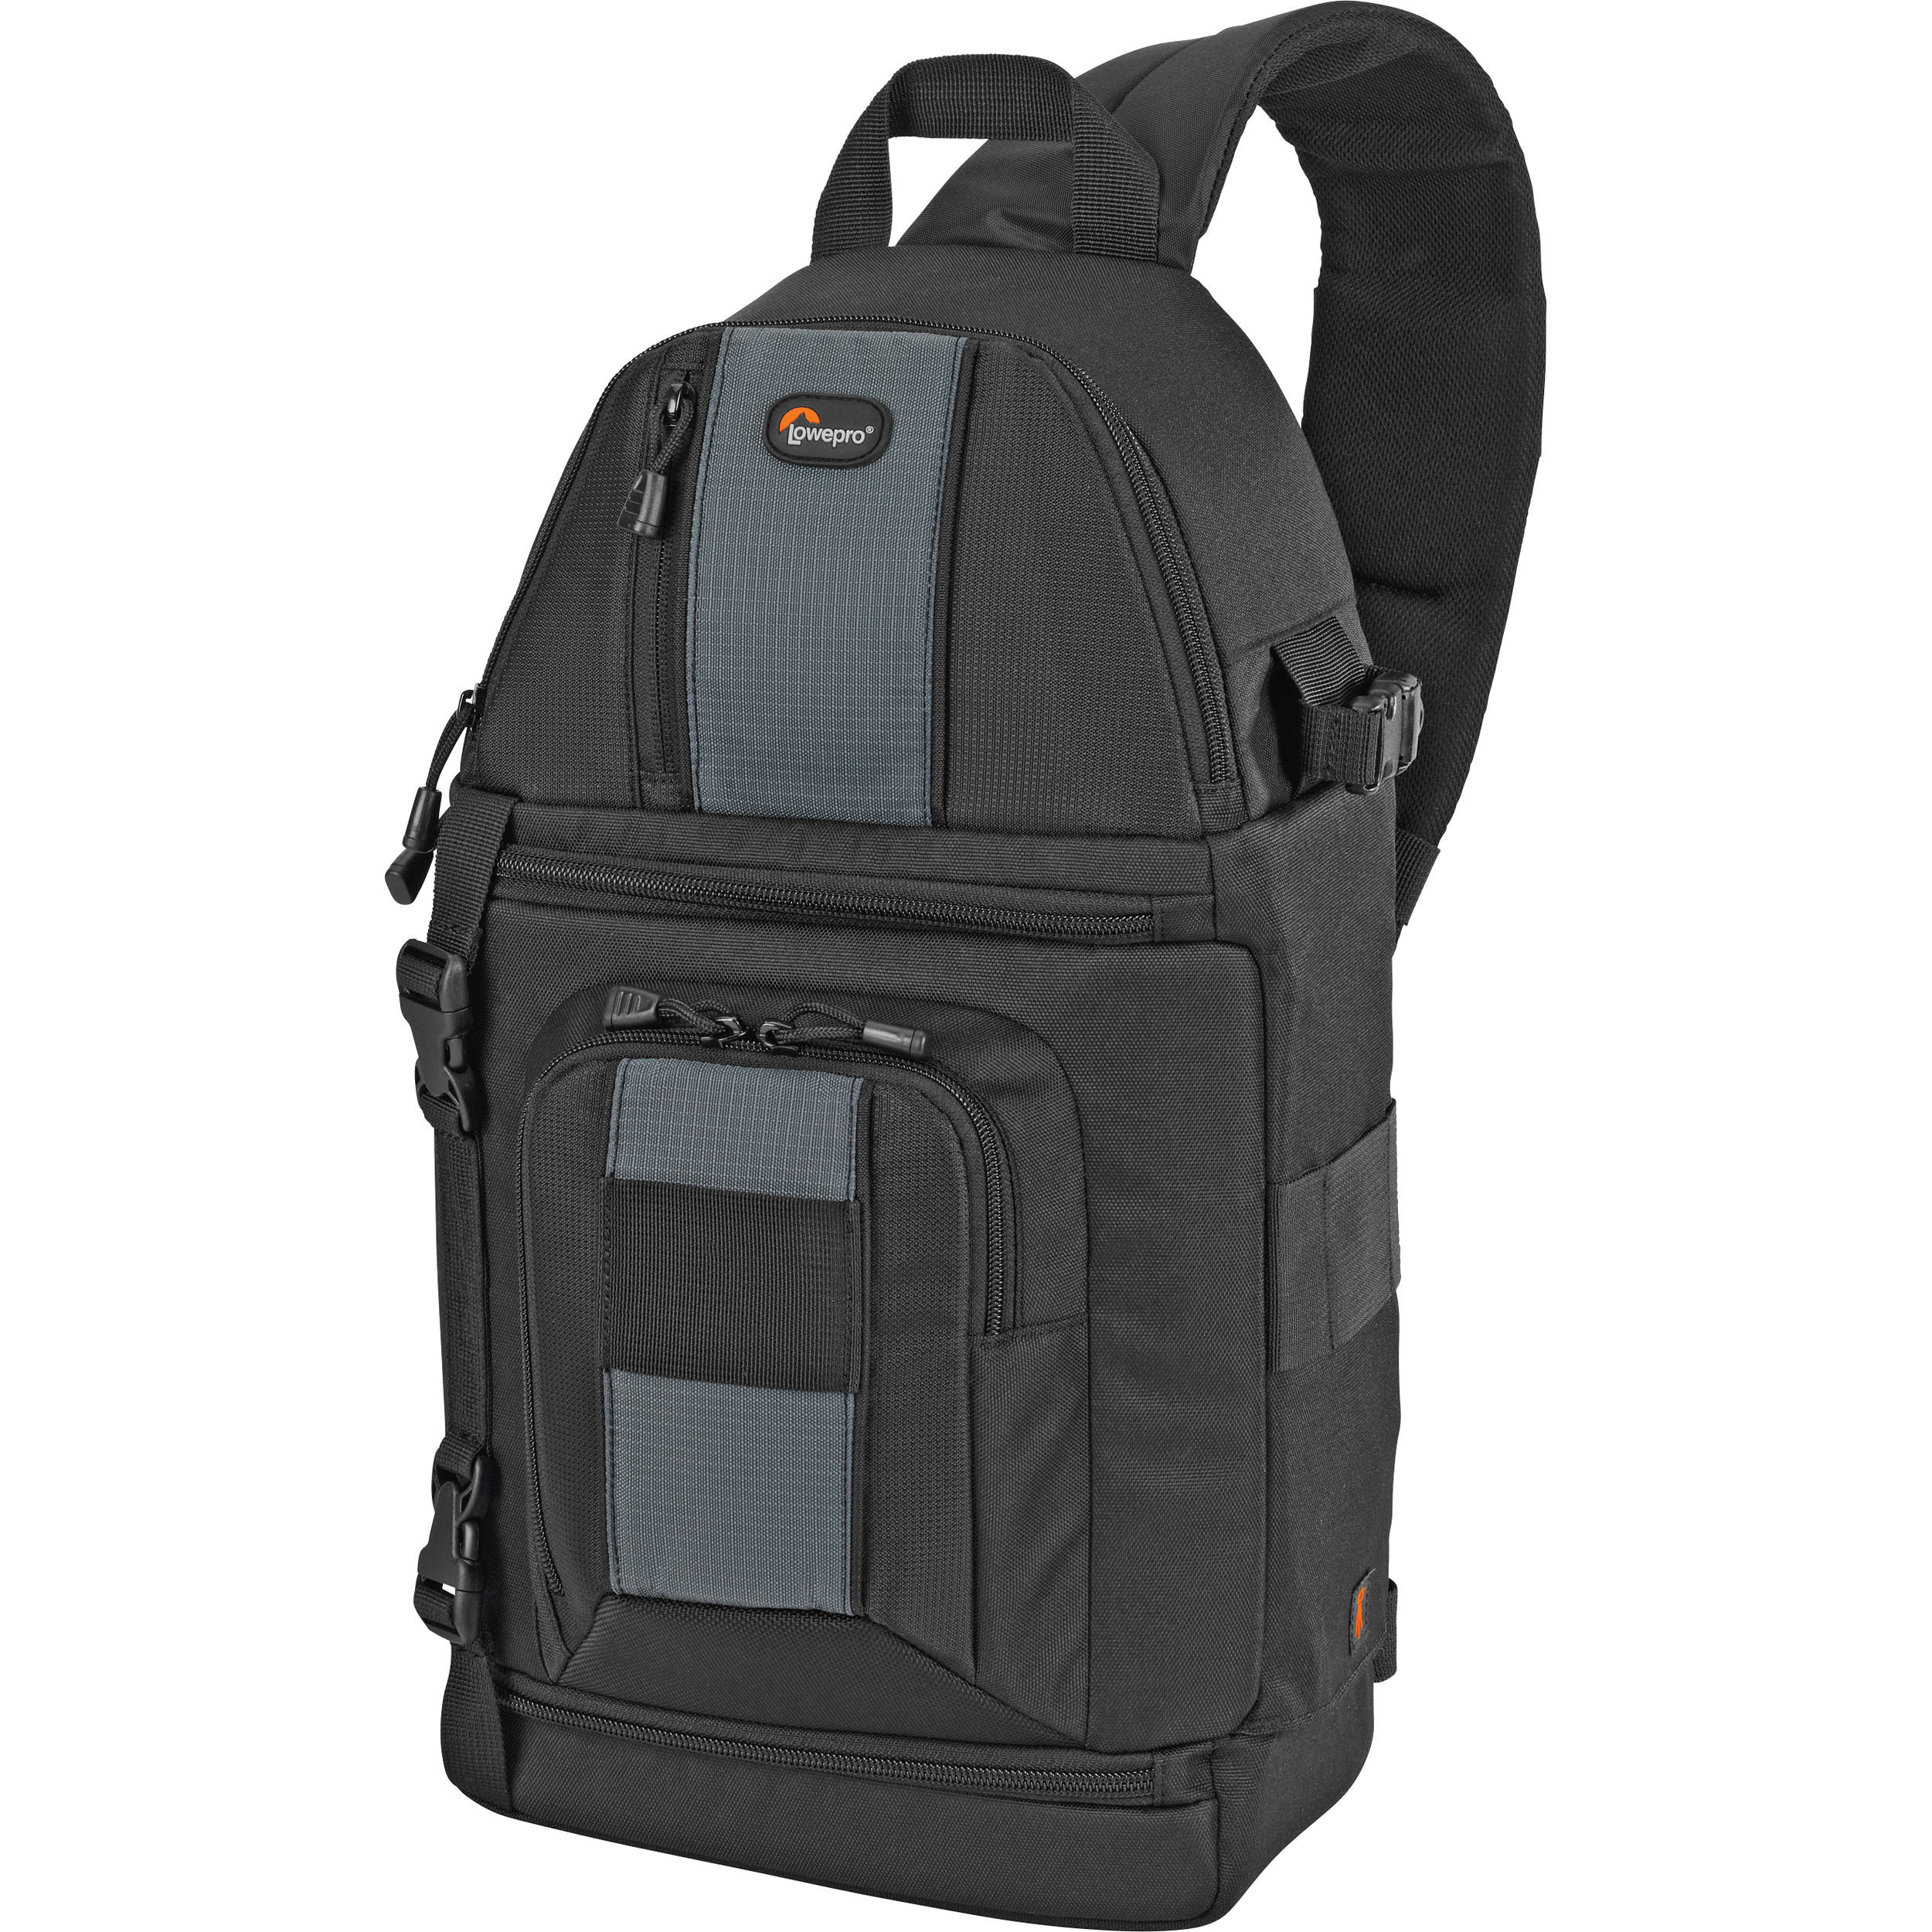 Lowepro SlingShot 202 AW Camera Bag LP36173 B&H Photo Video